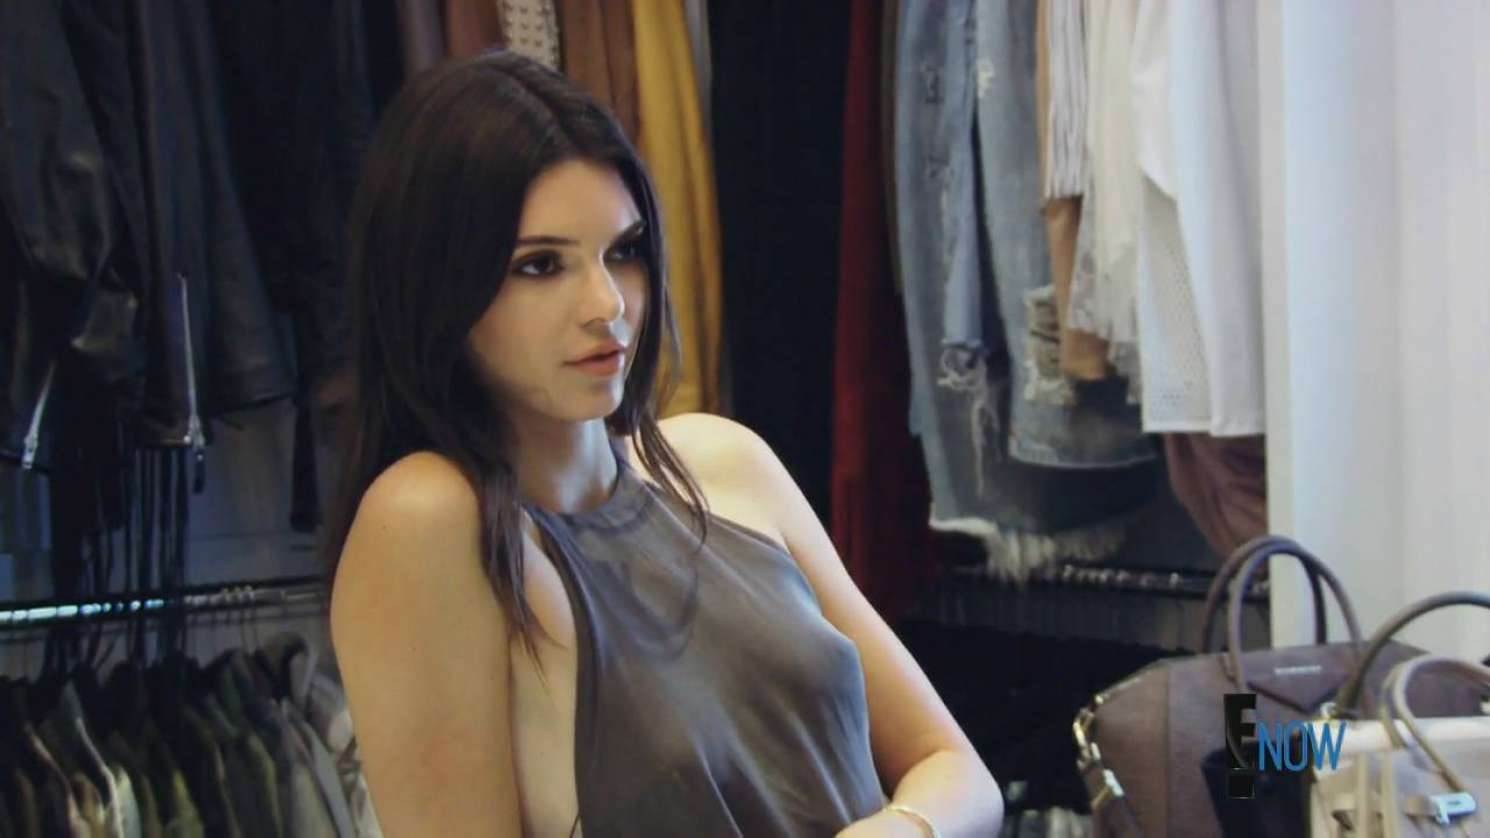 kendall-jenner-keeping-up-with-the-kardashians-2015-s11e04-10-1